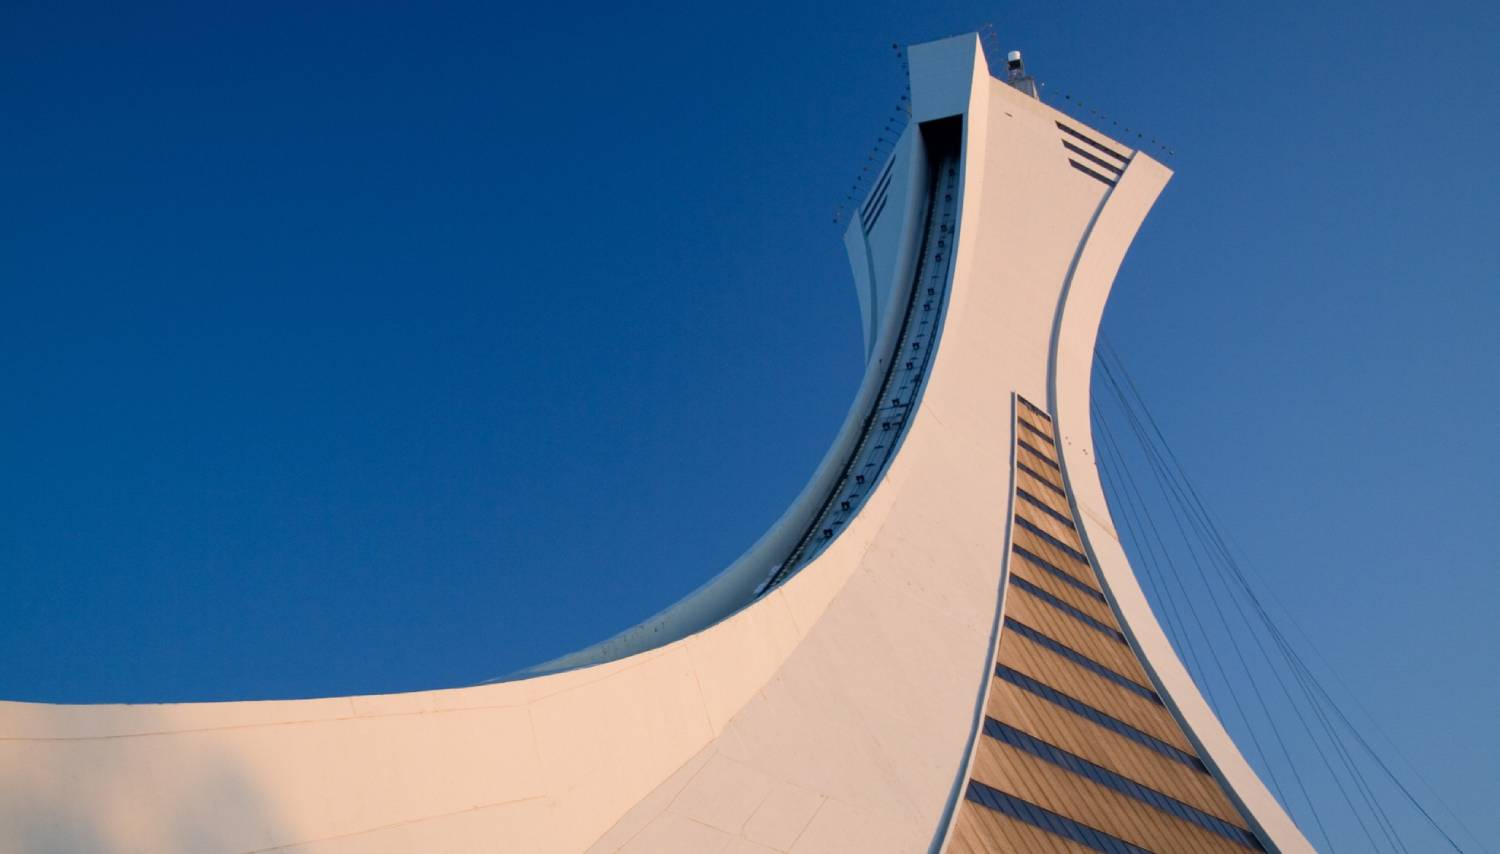 Montreal Tower Observatory - Things To Do In Montreal